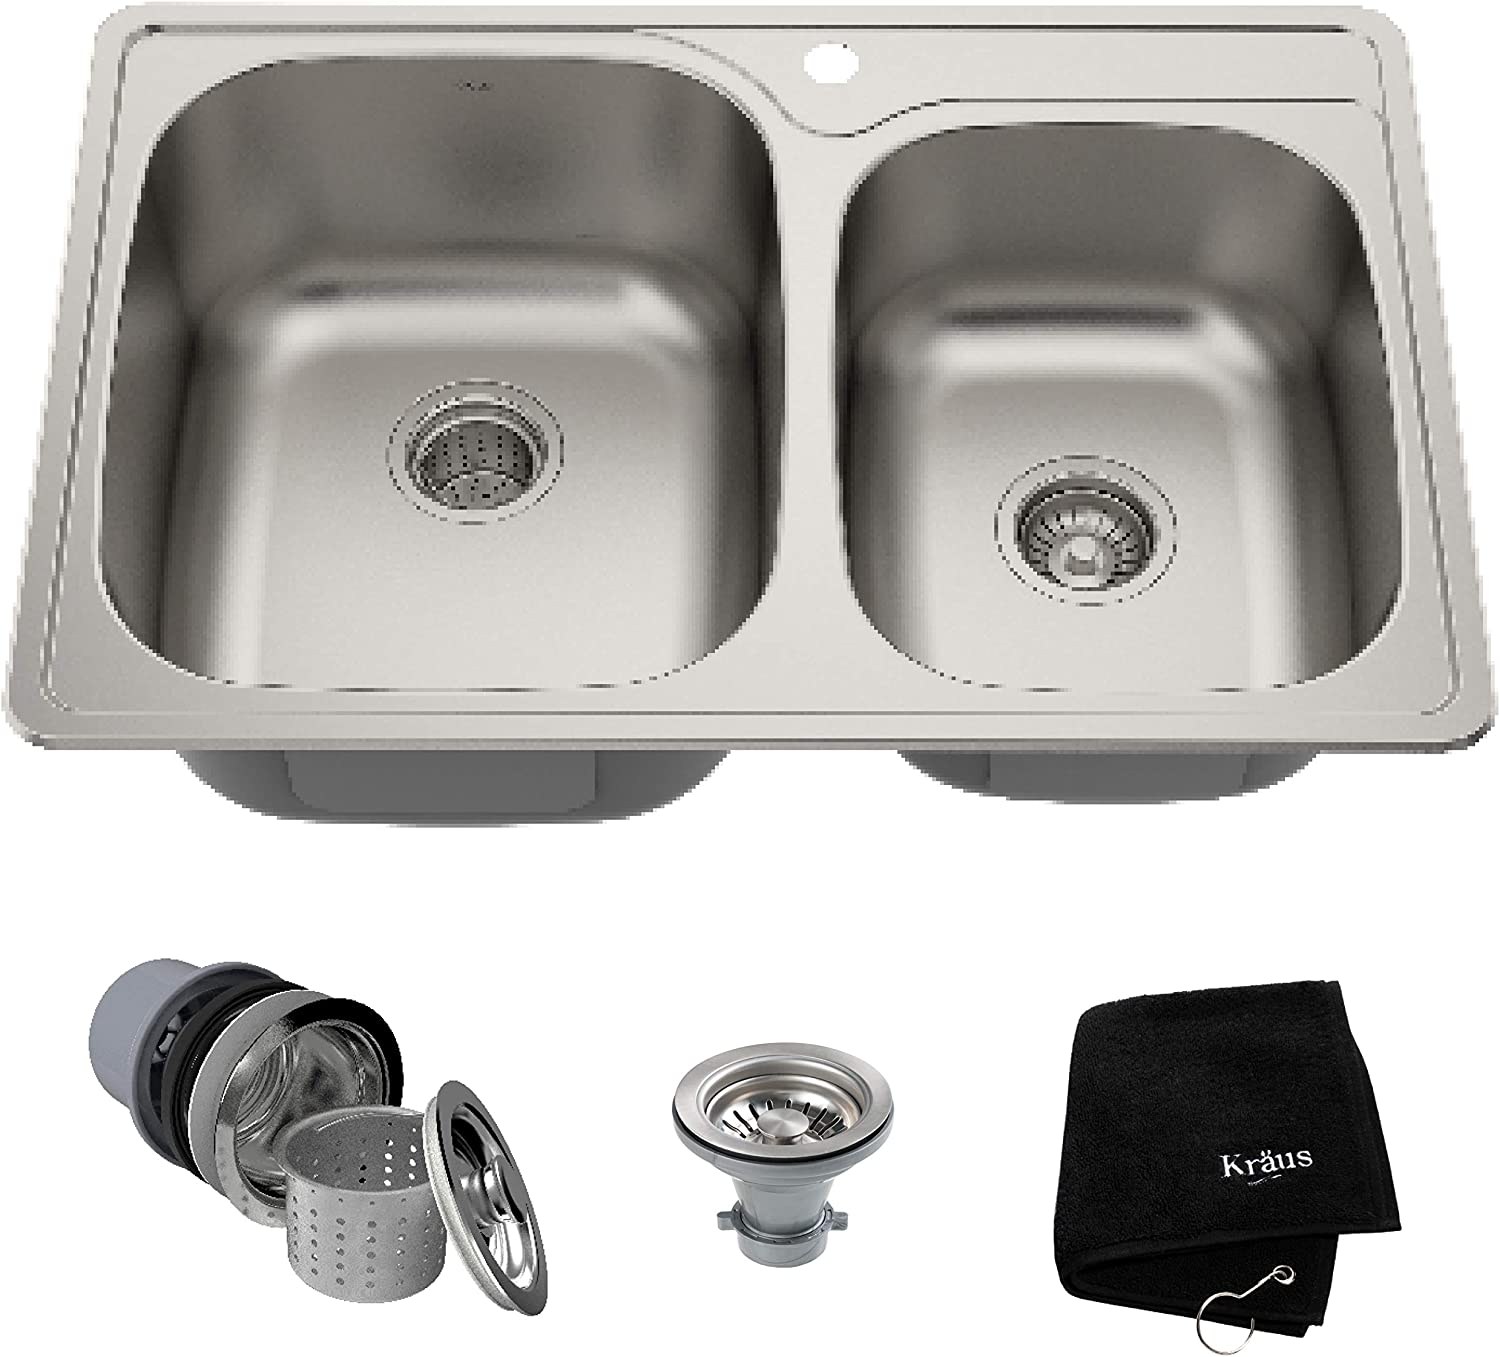 Kraus Ktm32 Premier Kitchen Sink 33 Inch Double Bowl 60 40 Amazon Com